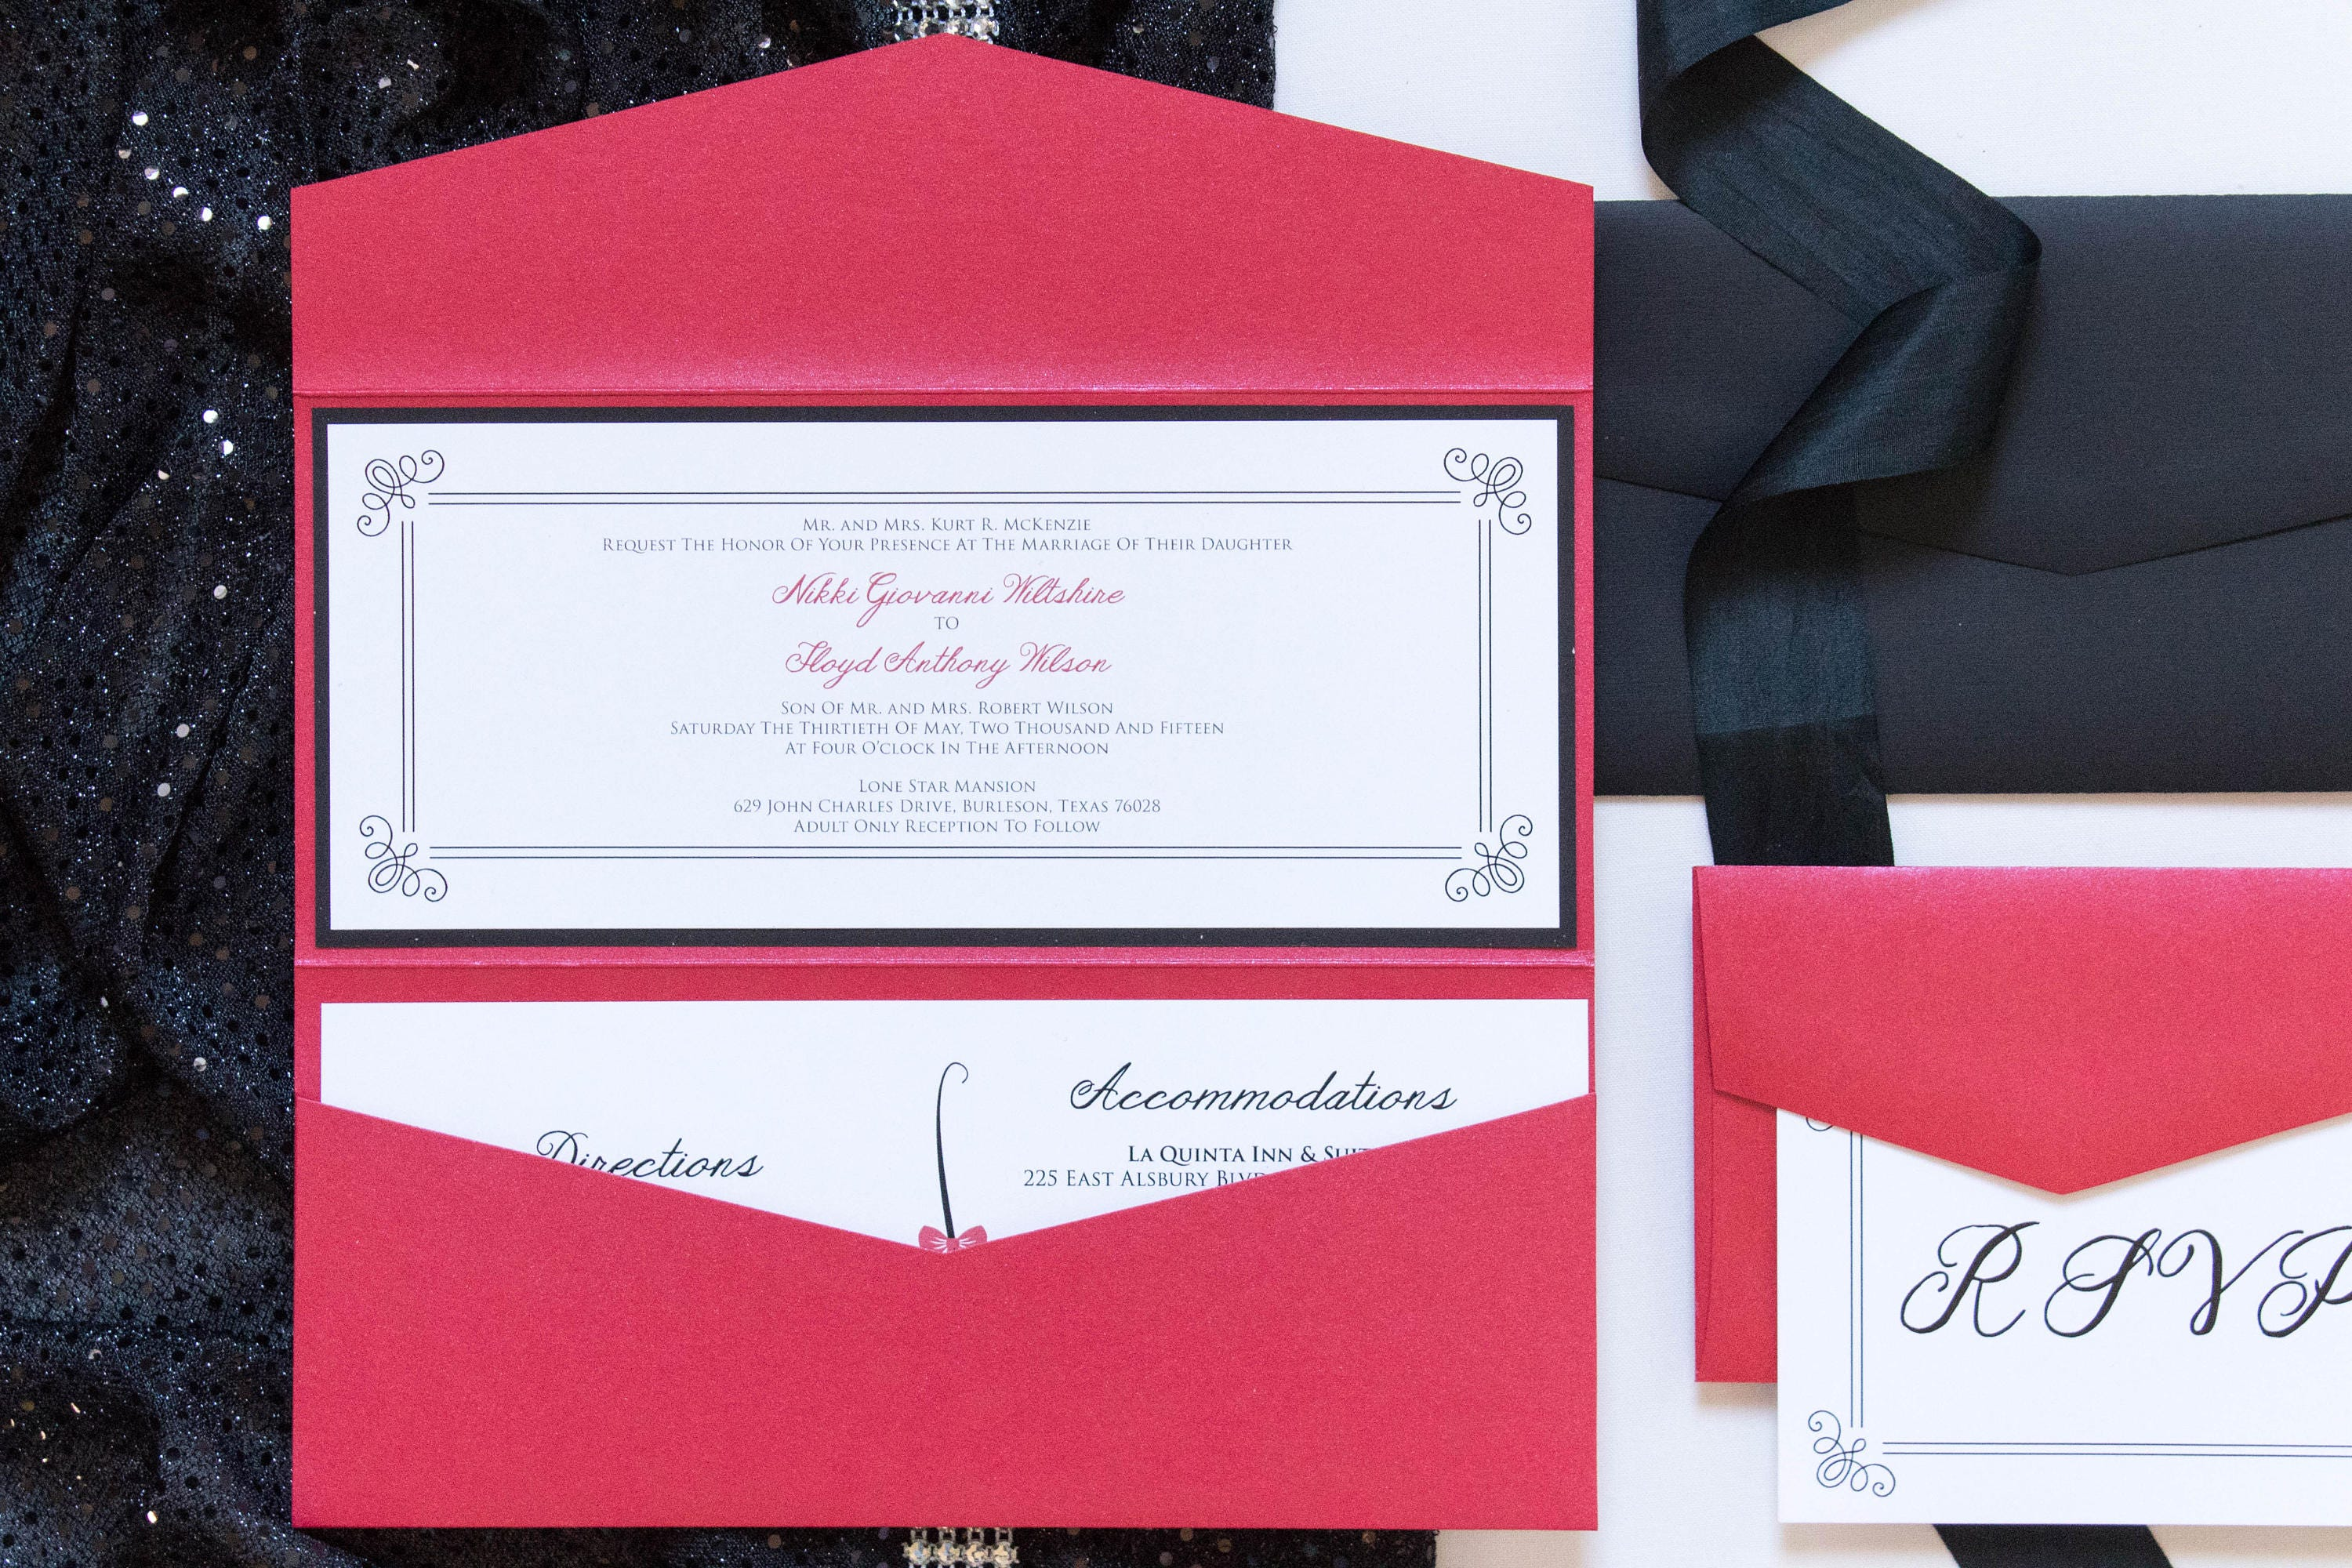 4x9 Odd Size Red and Black Pocket Wedding Invitation with Details ...